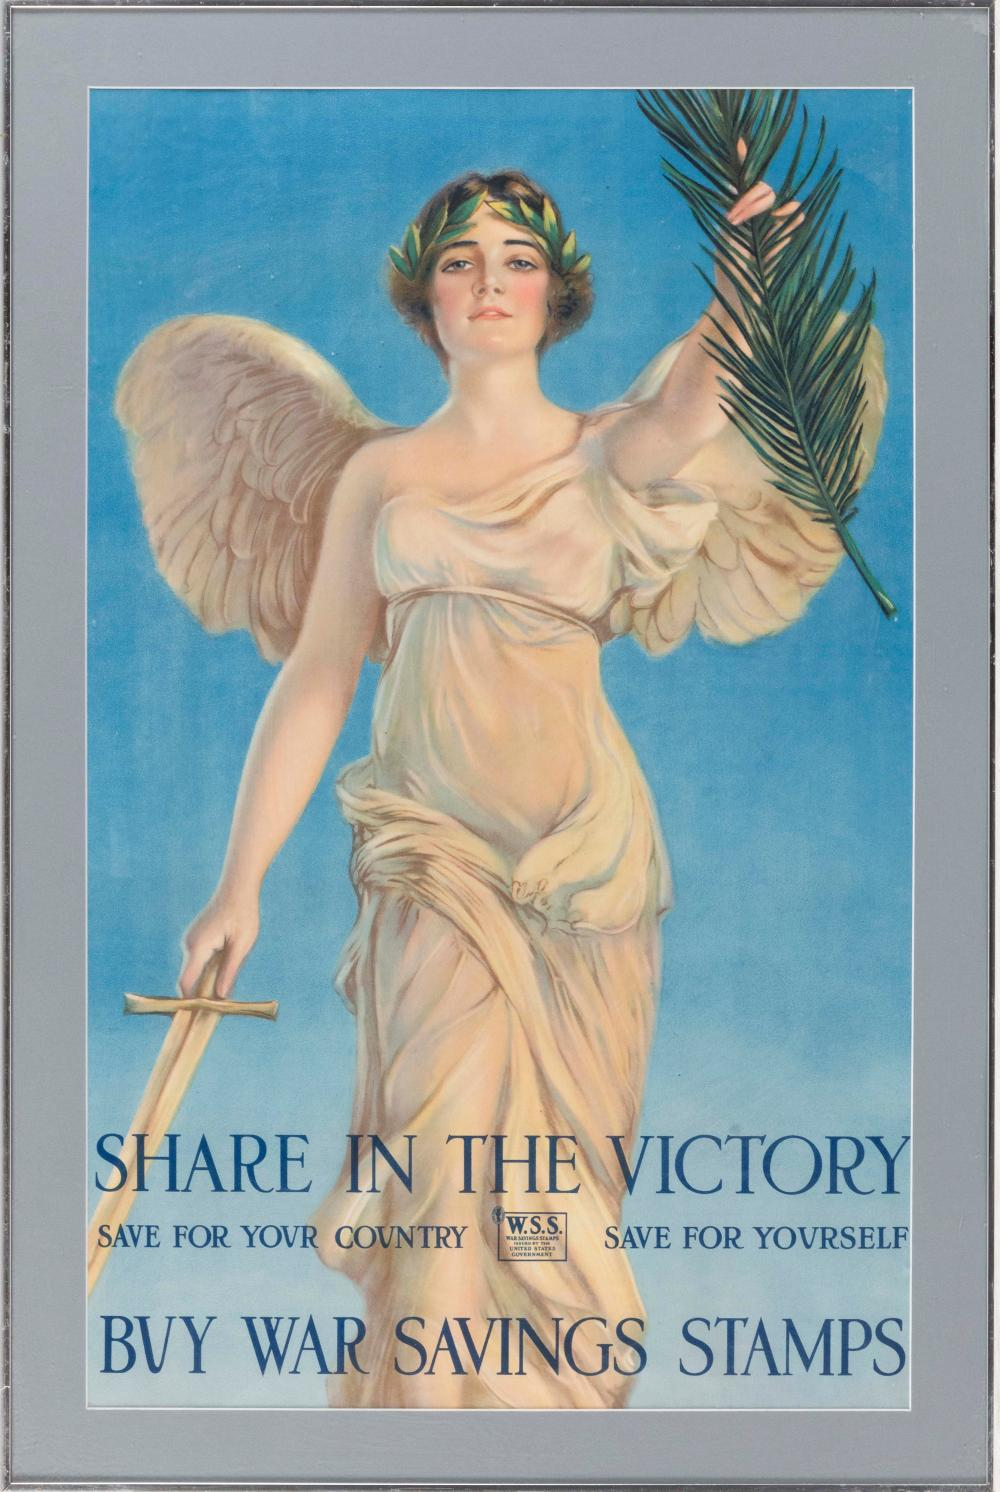 """SHARE IN THE VICTORY SAVE FOR YOUR COUNTRY SAVE FOR YOURSELF BUY WAR SAVINGS STAMPS"" WORLD WAR I POSTER By Haskell Coffin. Depicts..."